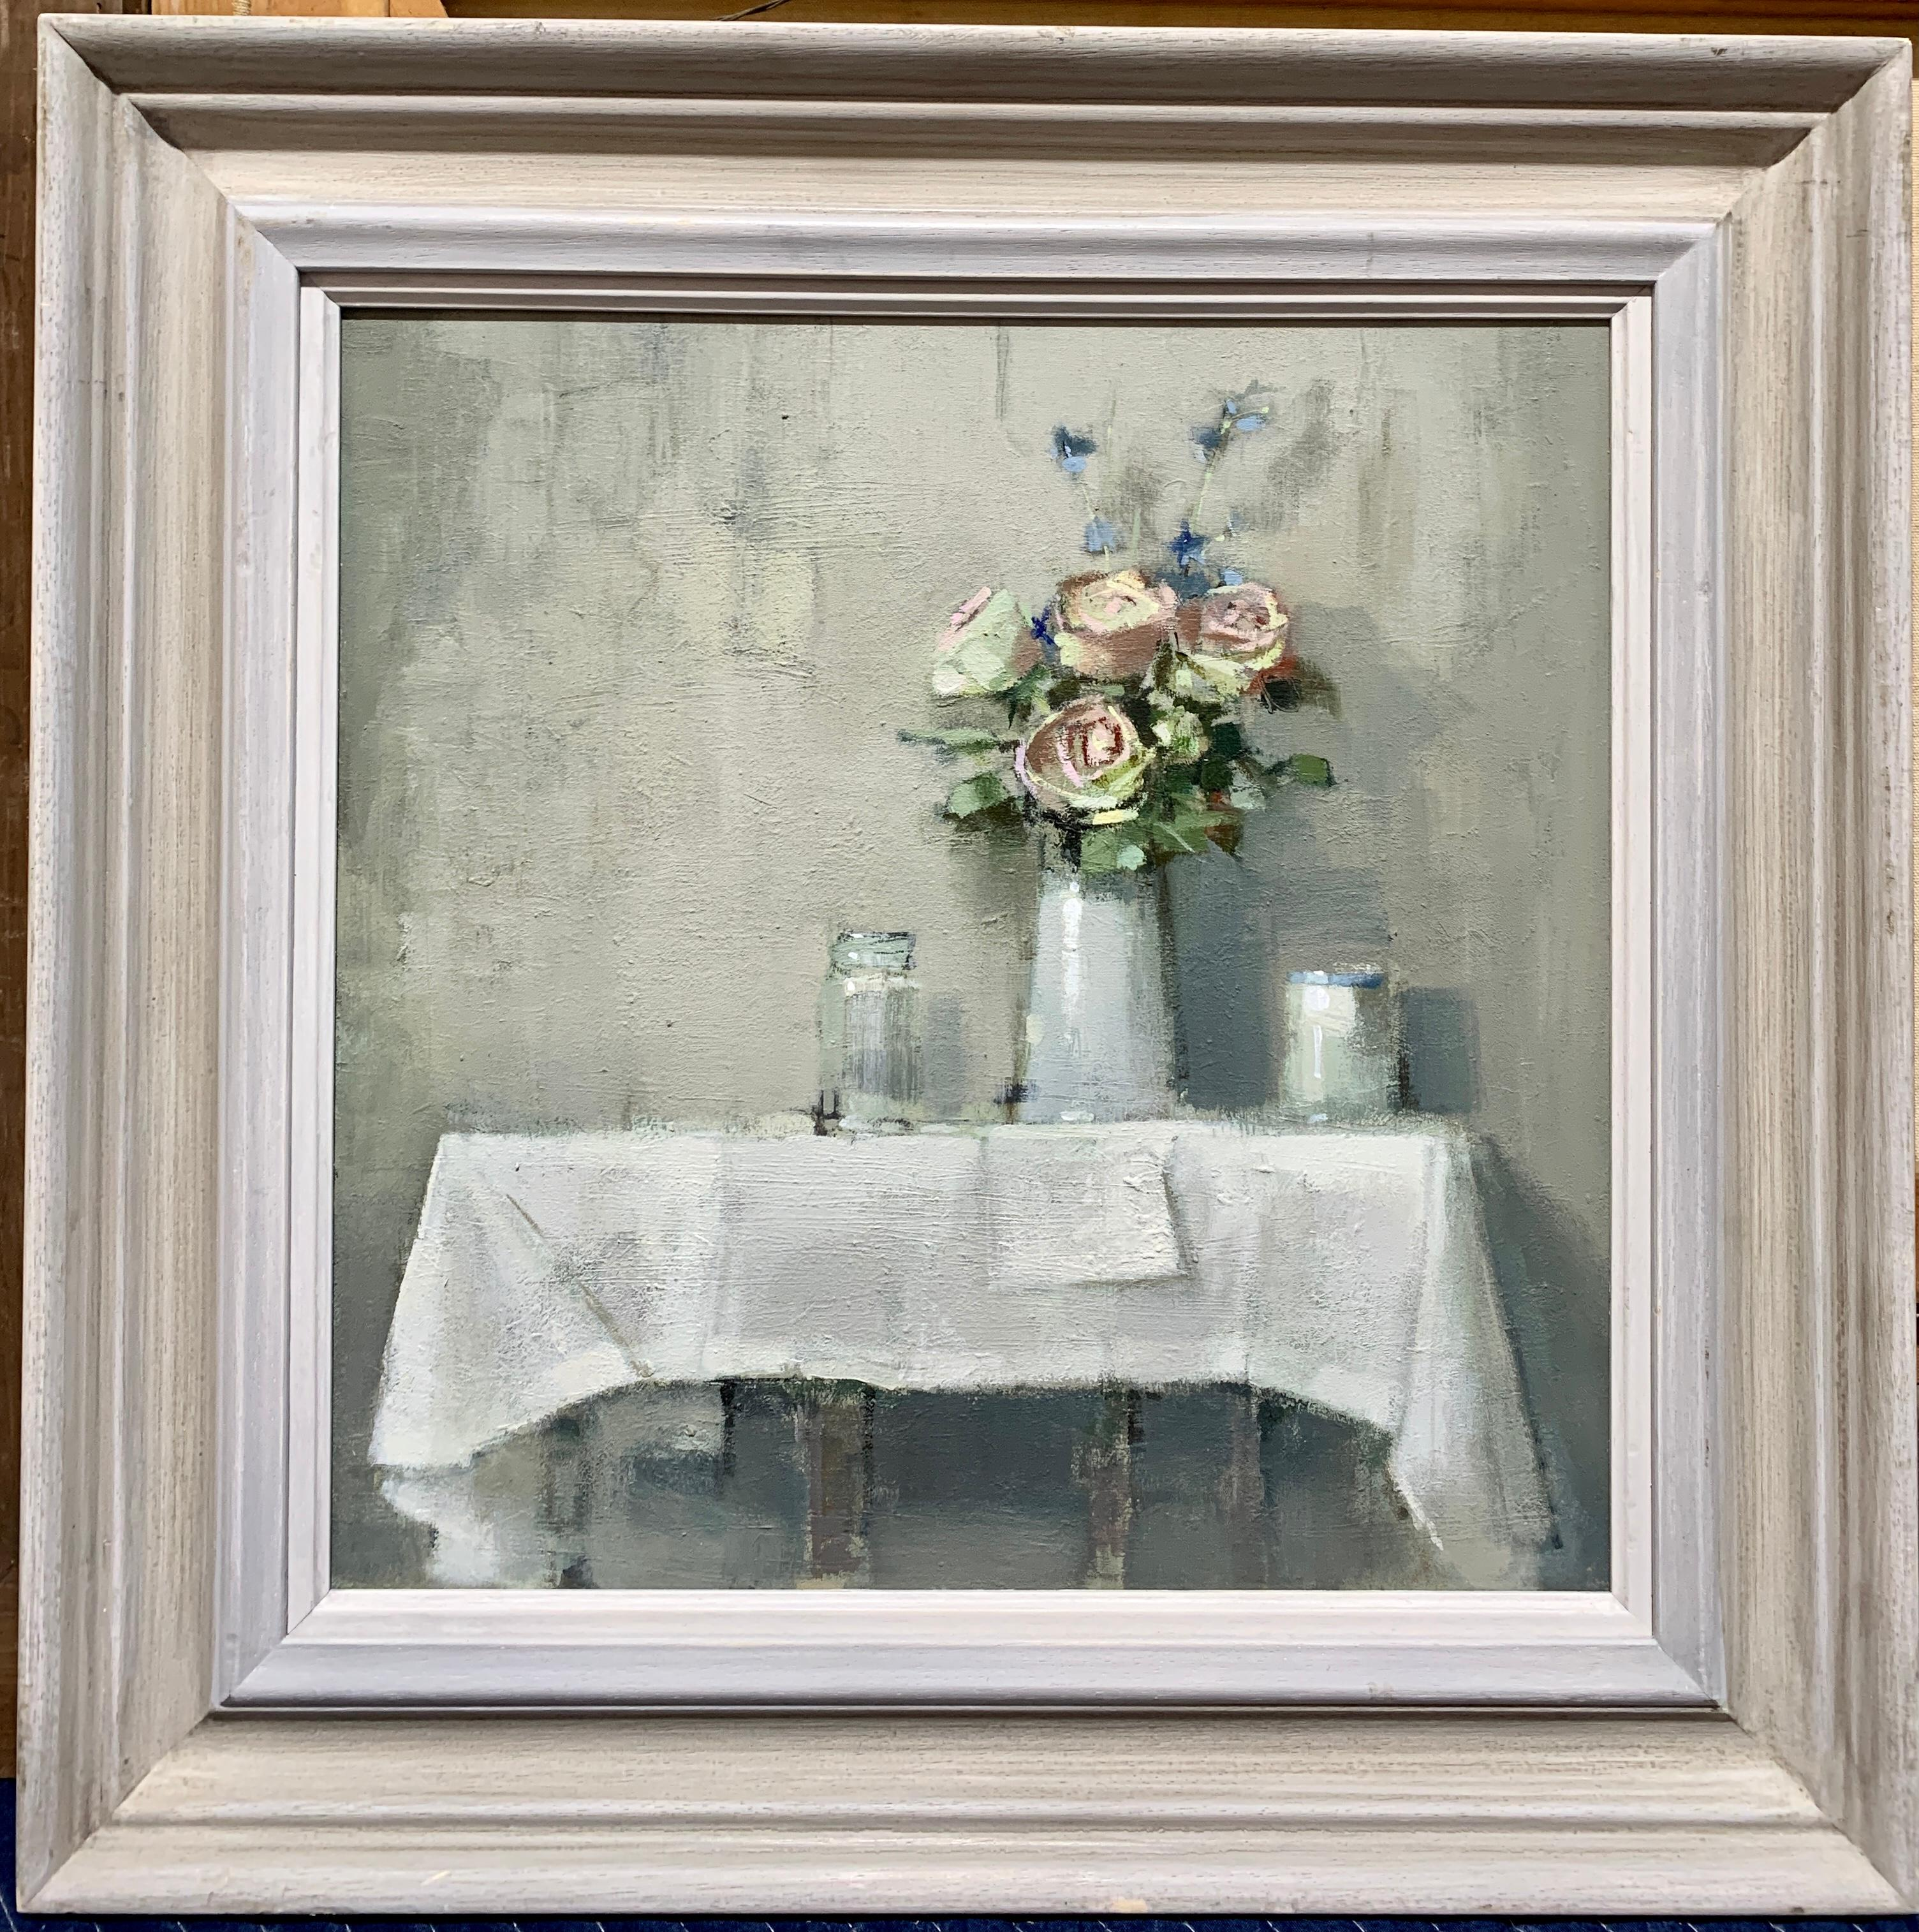 British 20th century White and Pink Roses on a table in an interior still life